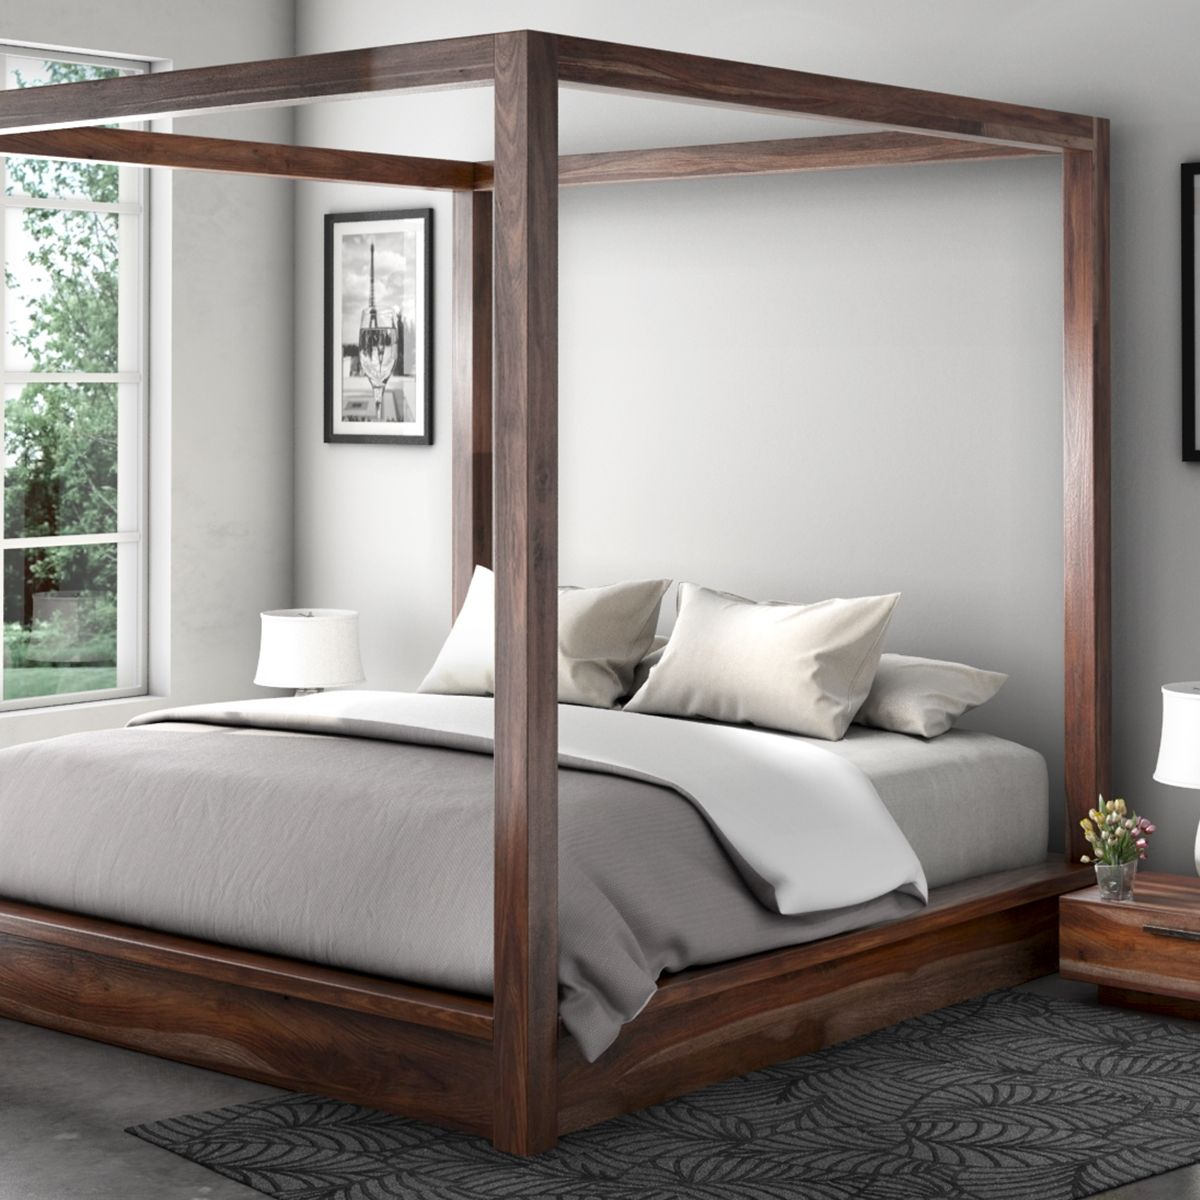 Delaware Solid Wood Platform Bed Frame: Hampshire Rustic Solid Wood King Size Canopy Bed